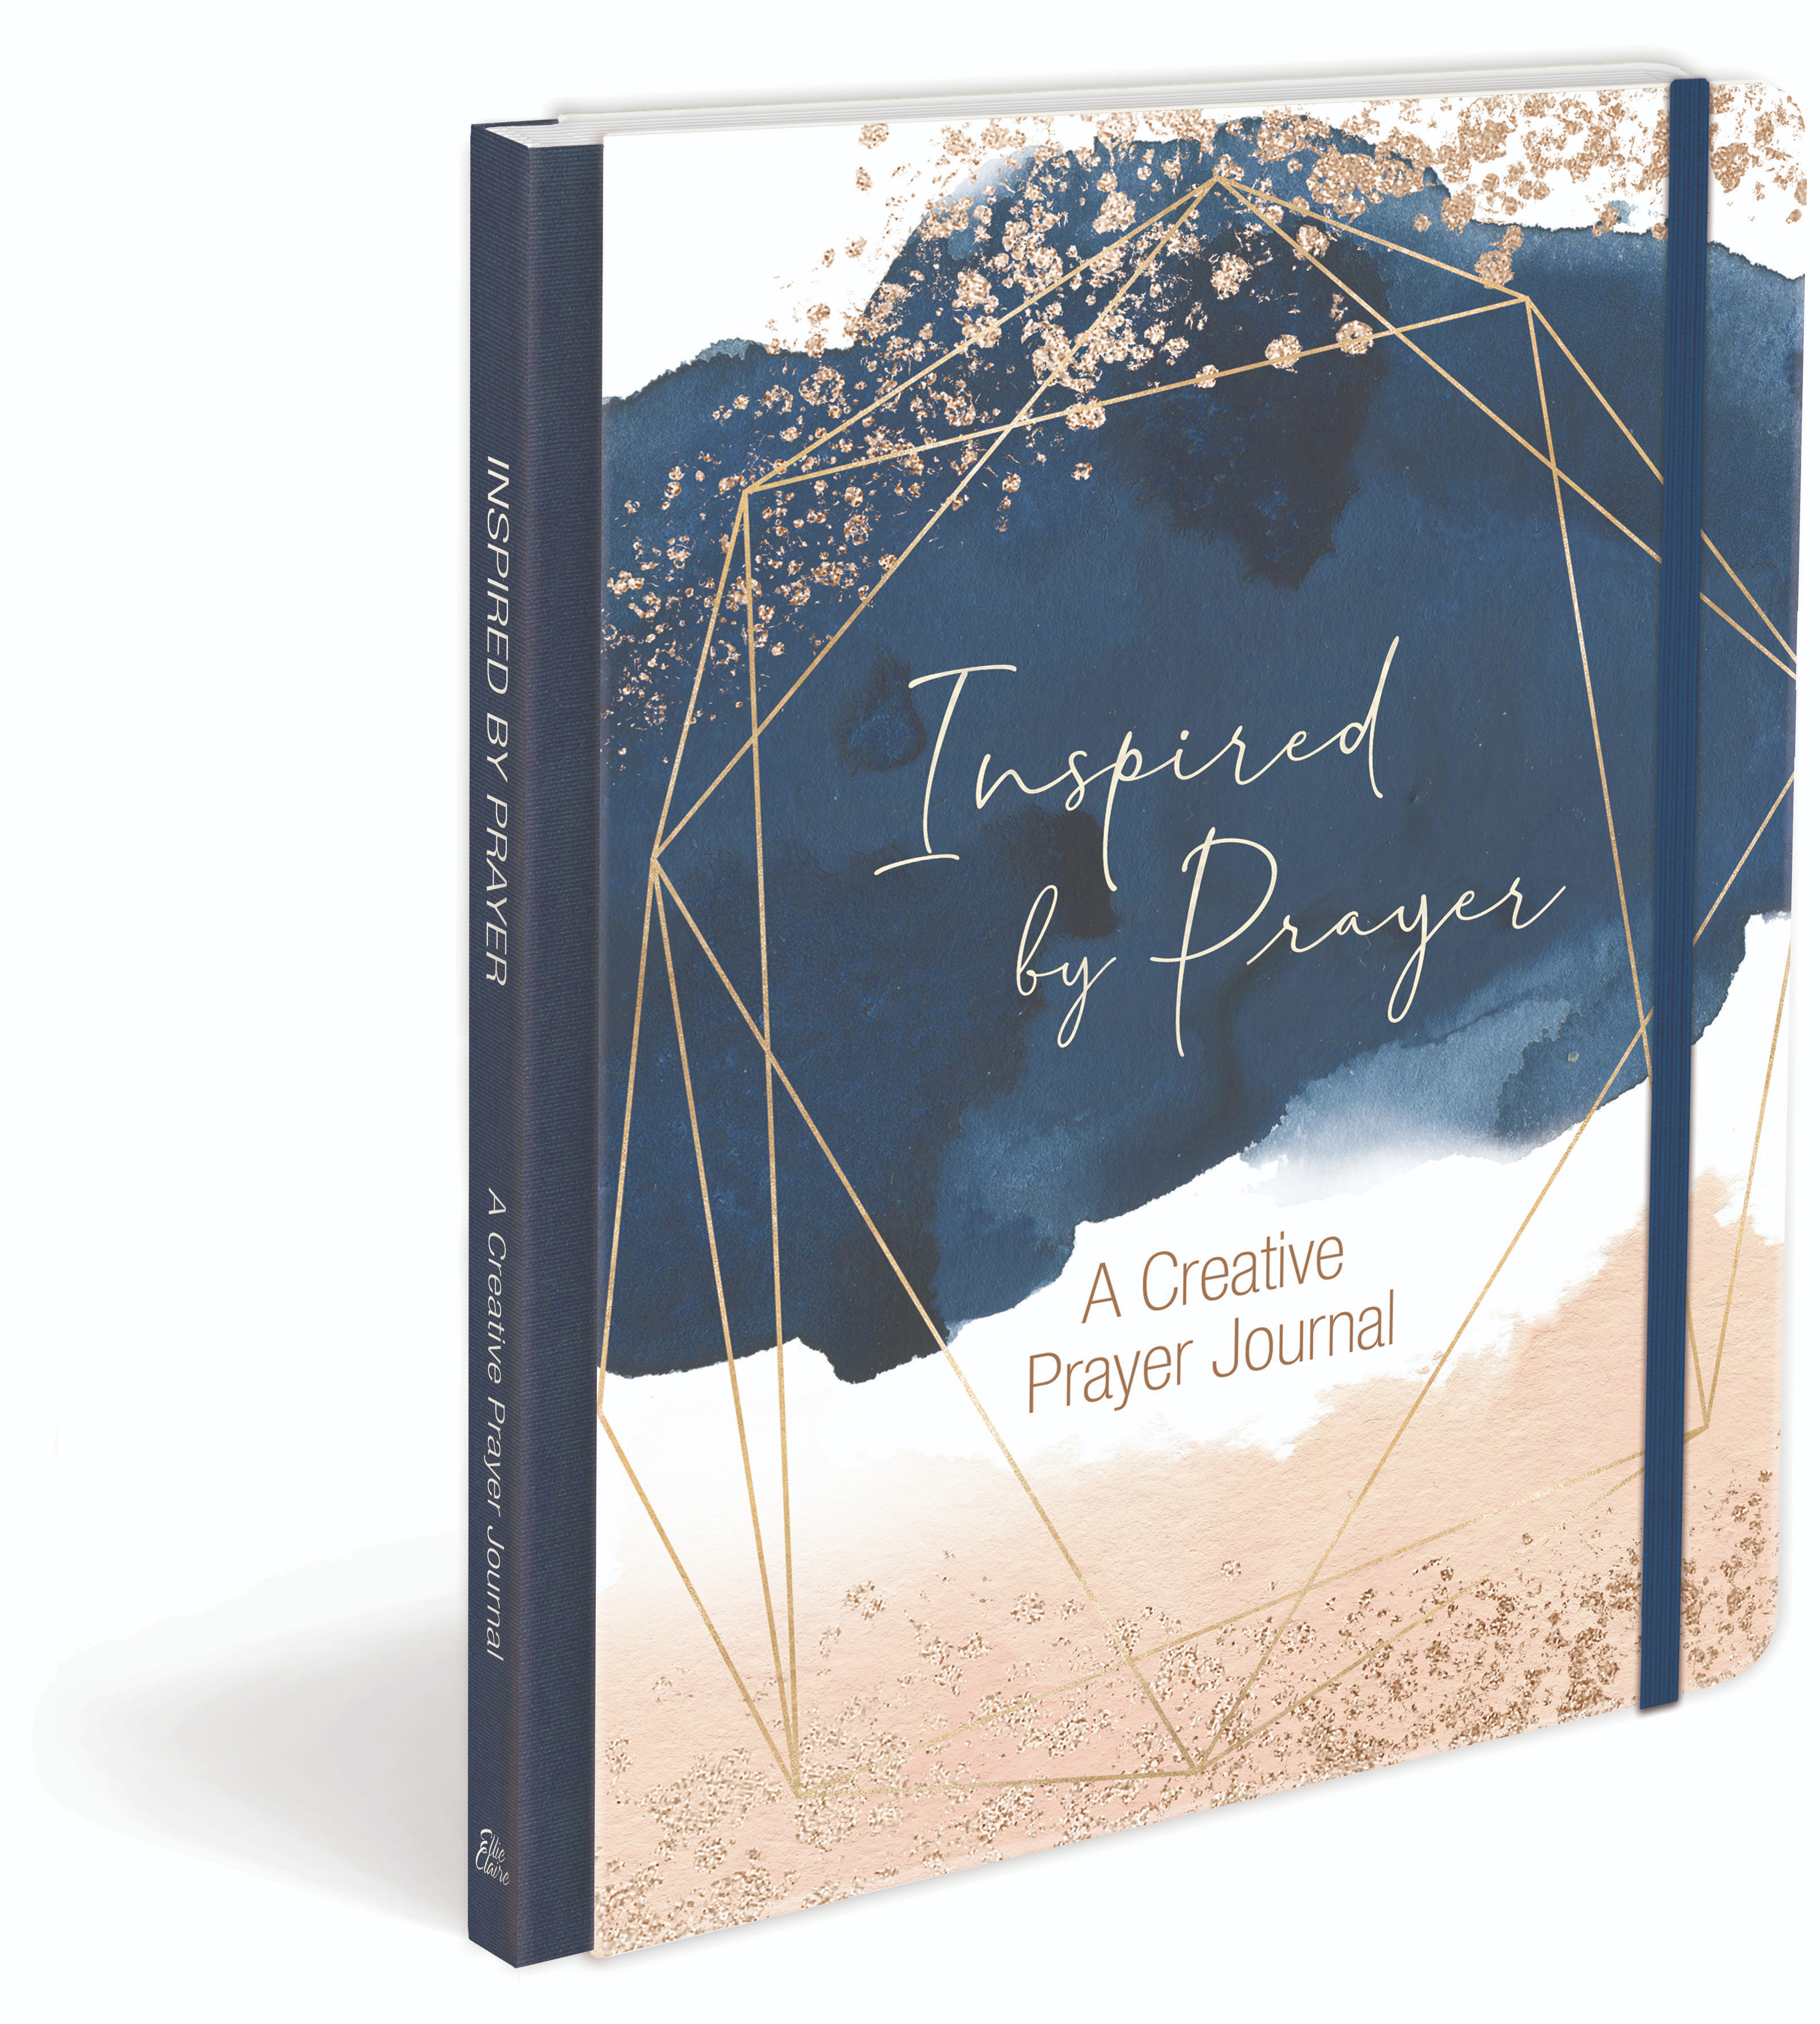 Inspired by Prayer 3-D